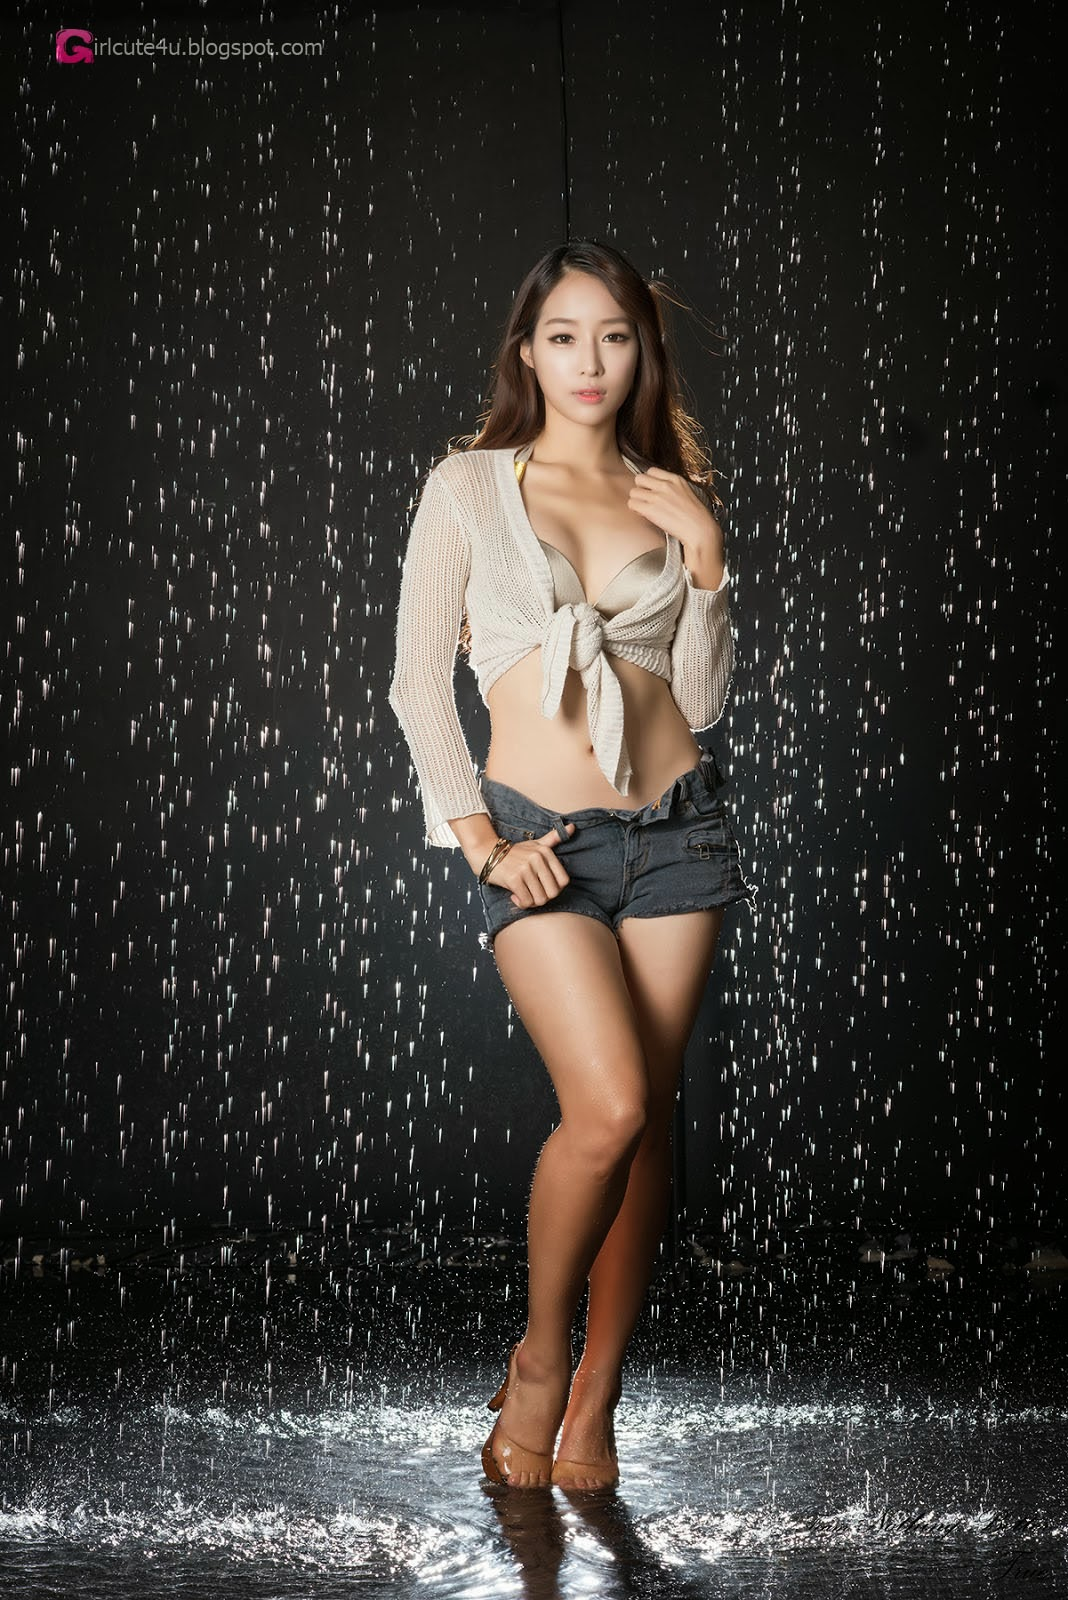 Girls wet mobile pics 7